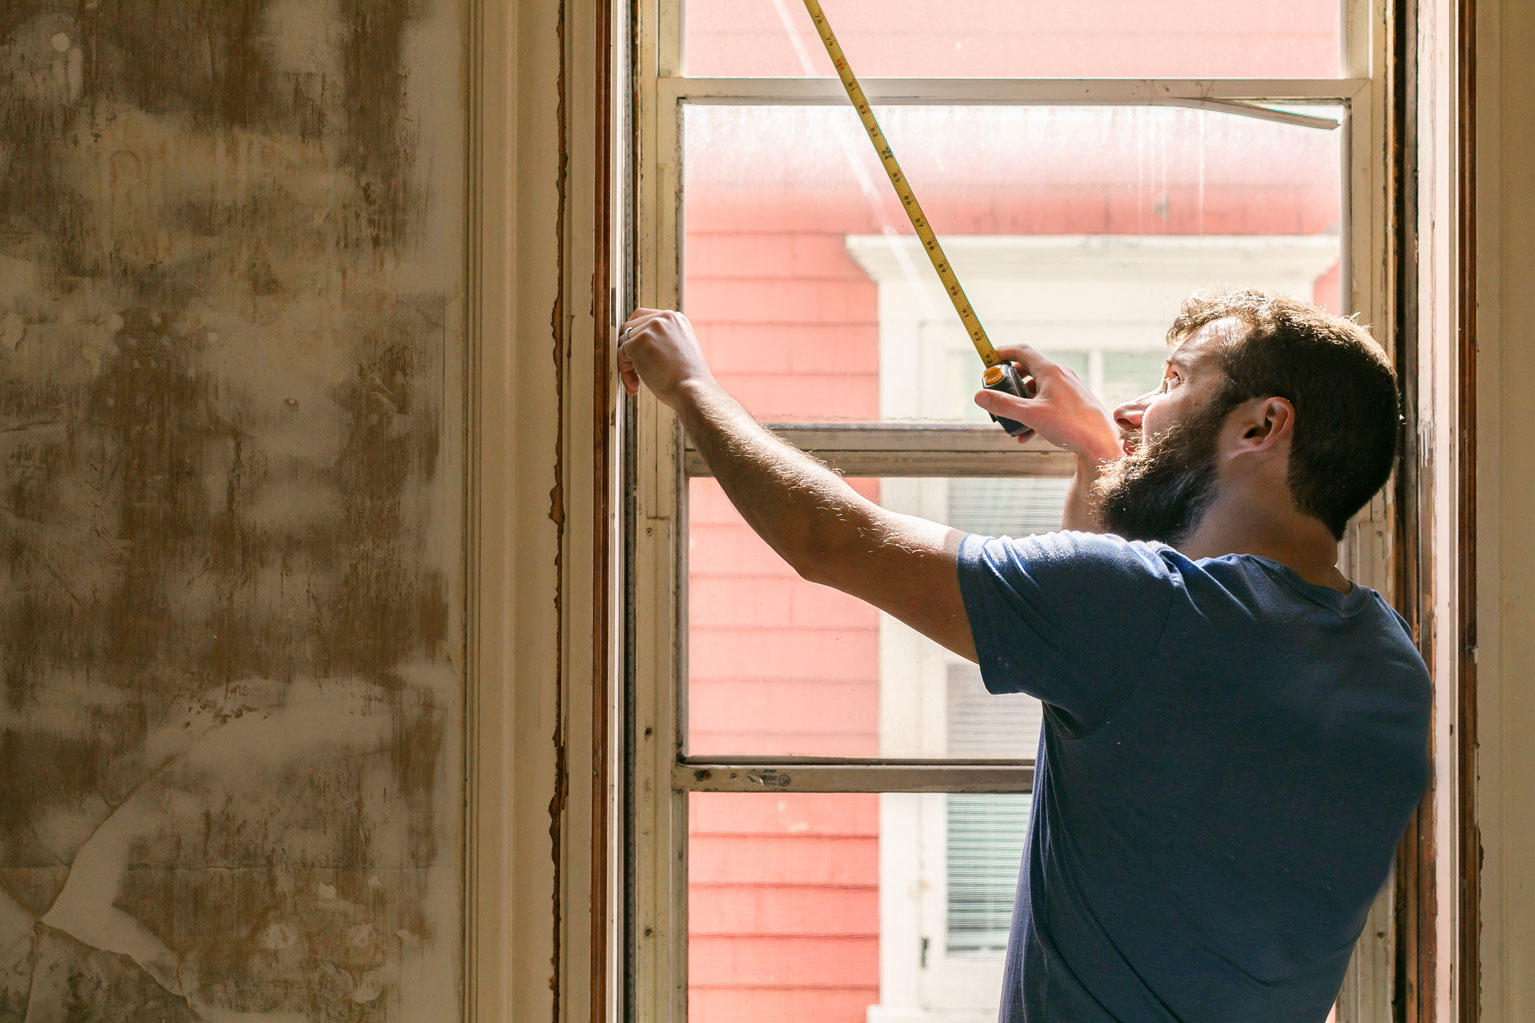 Construction worker holding measuring tape against energy efficient window